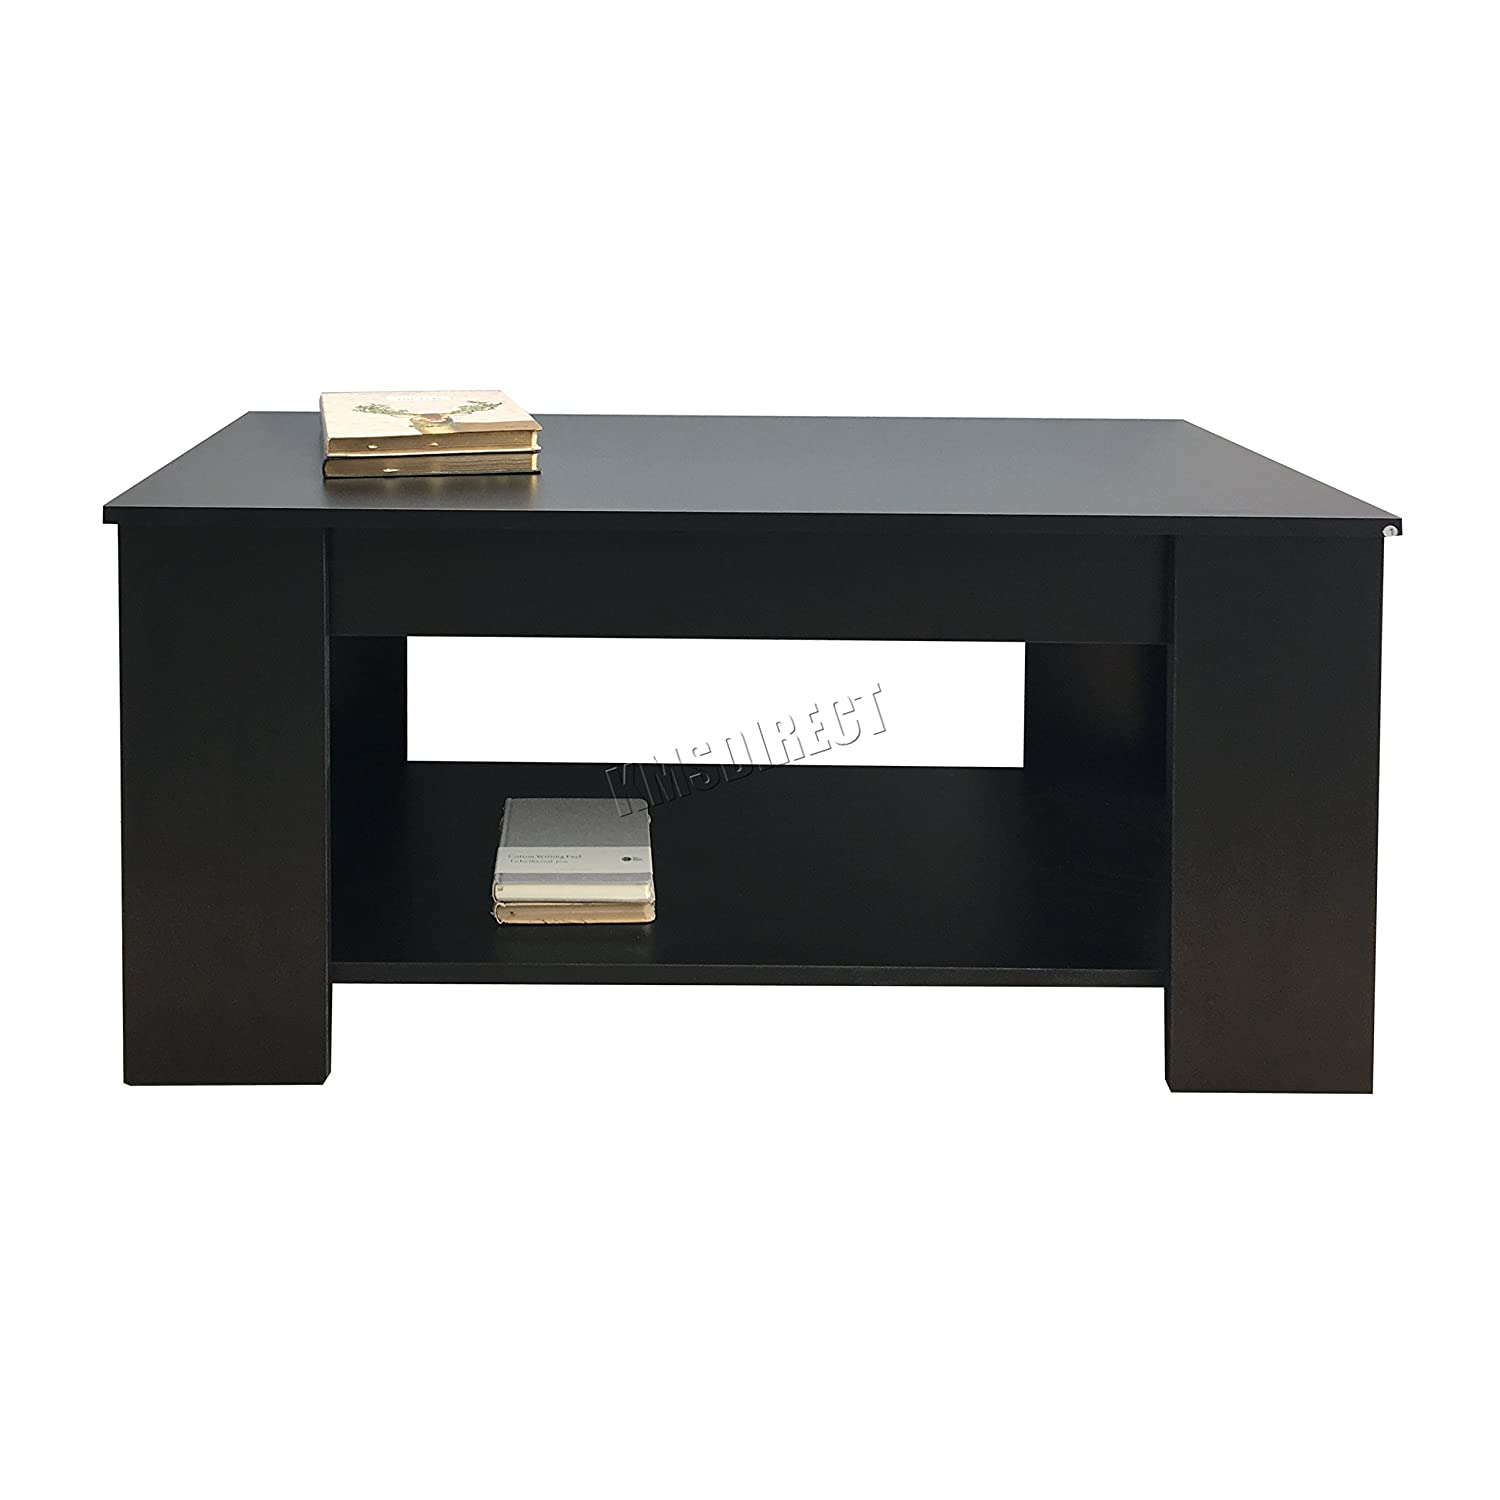 FoxHunter Lift Up Top coffee Table With Storage and Shelf Living